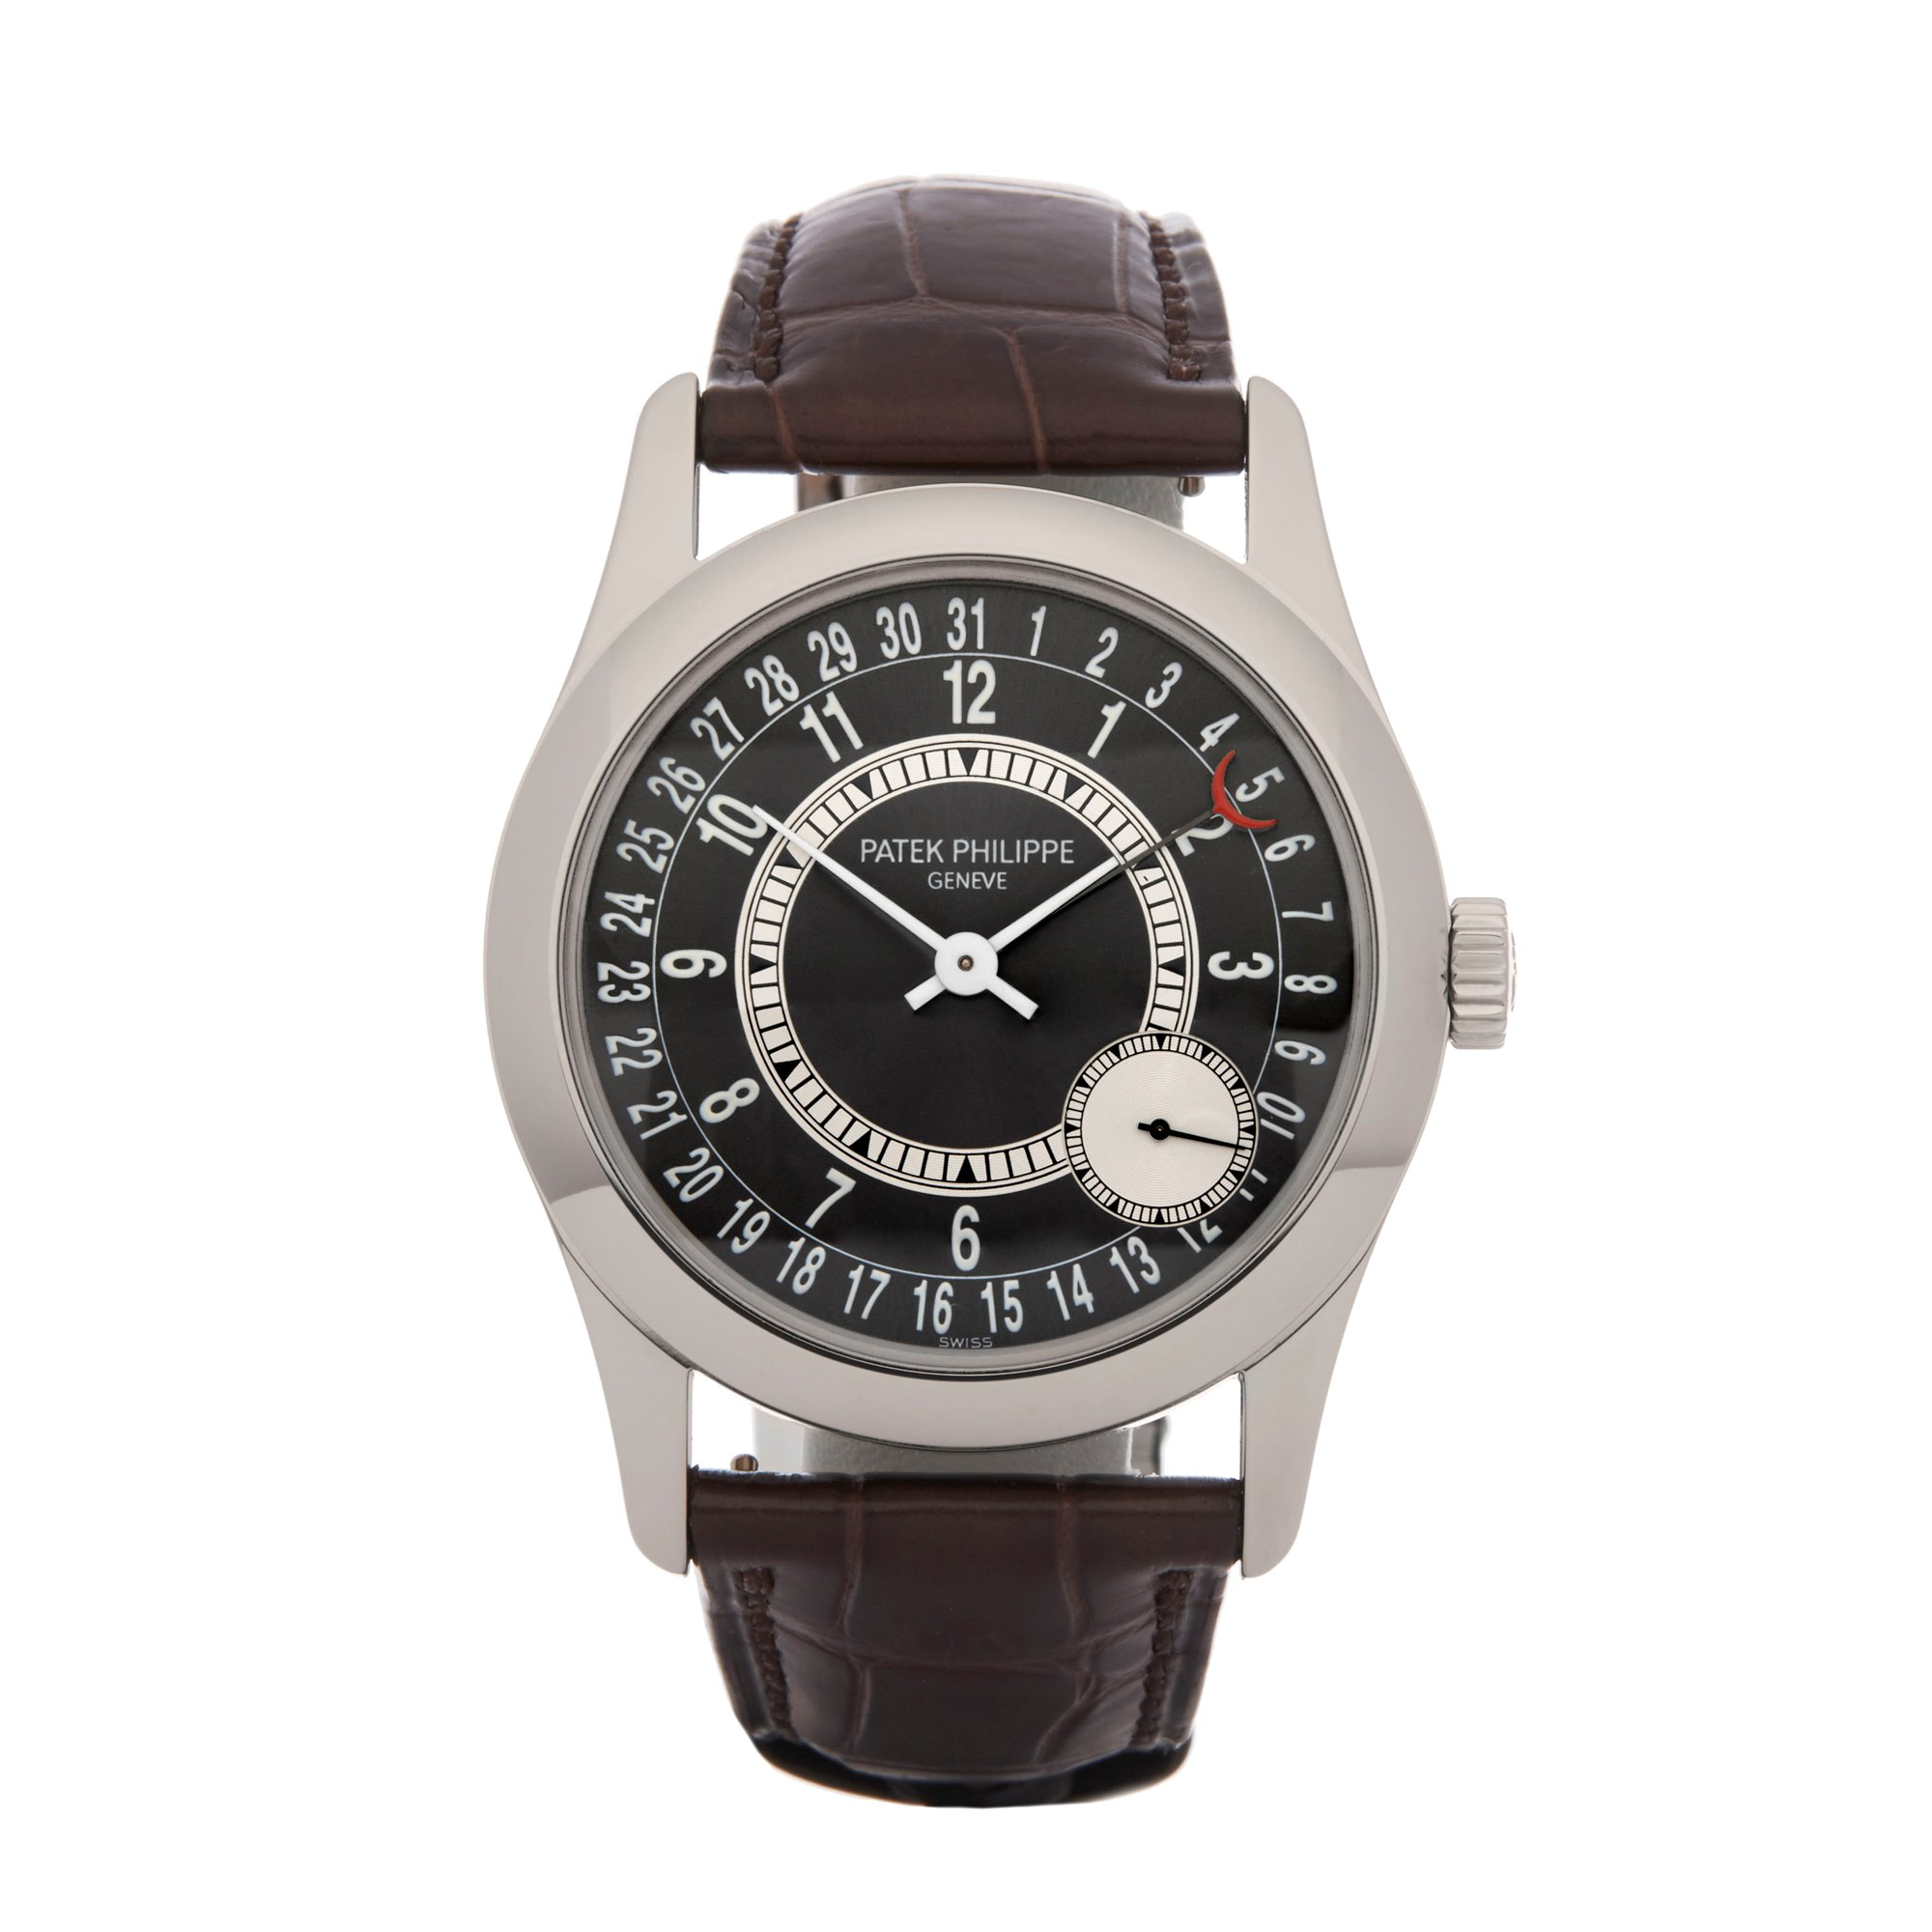 Patek Philippe Calatrava 6000G 2011 W6552 | Second Hand Watches